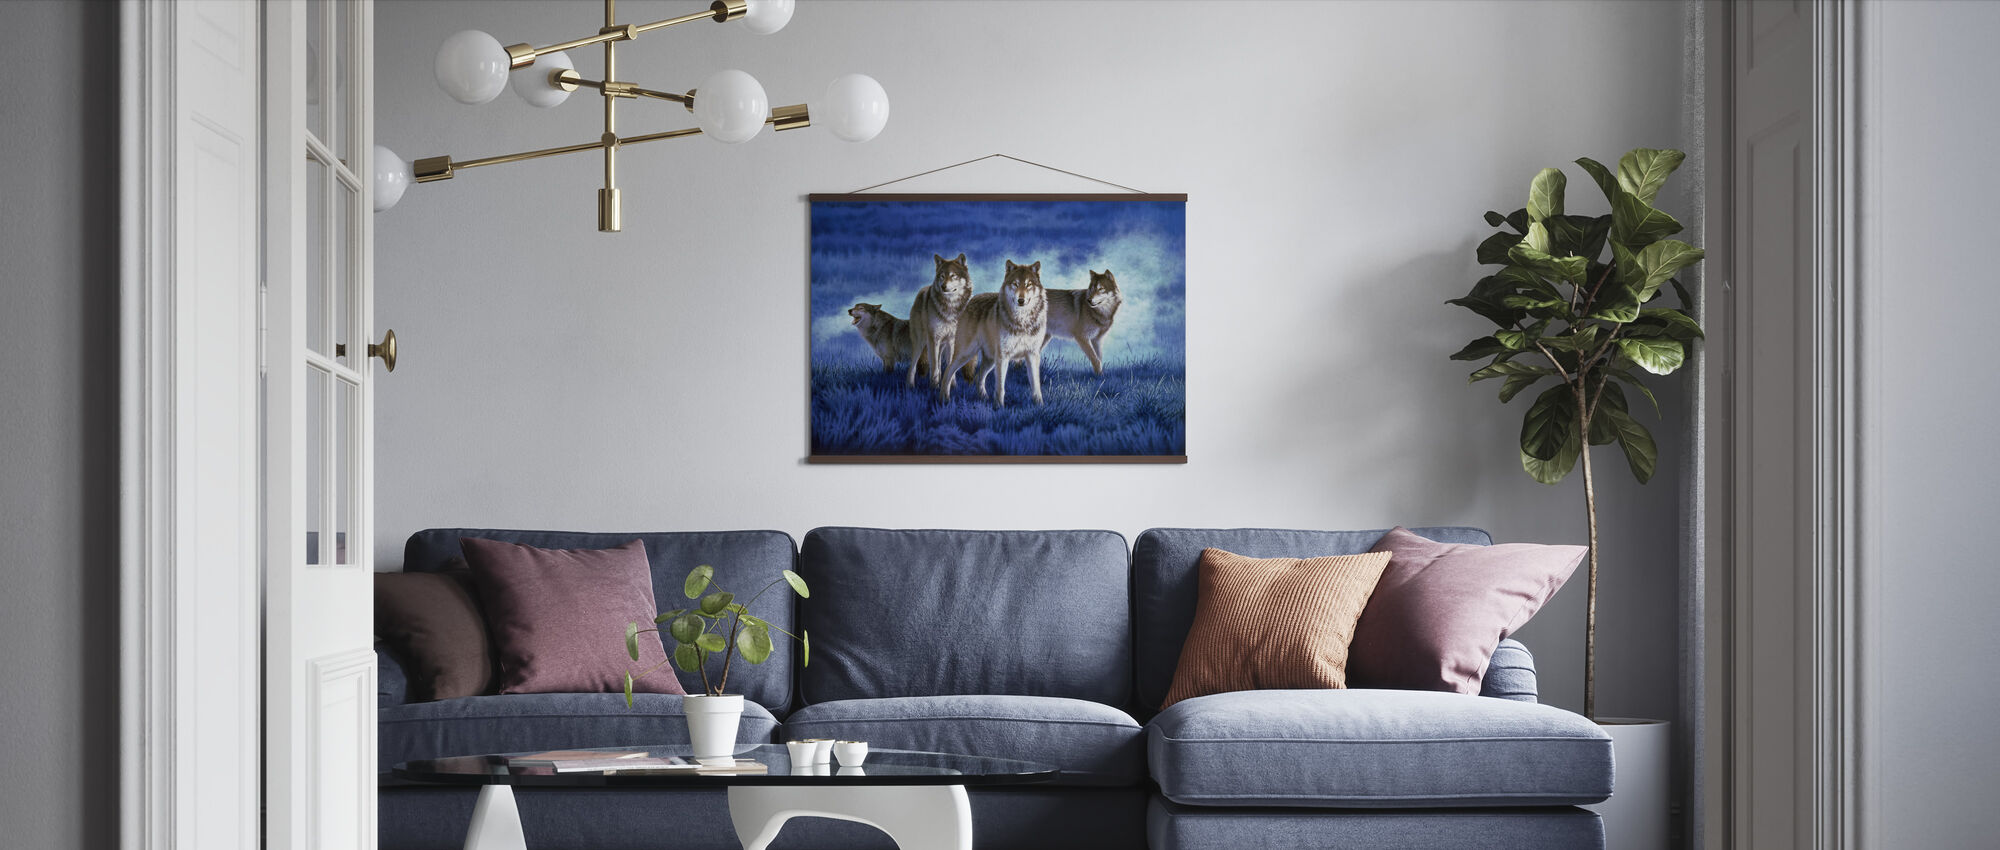 Wolves - Poster - Living Room